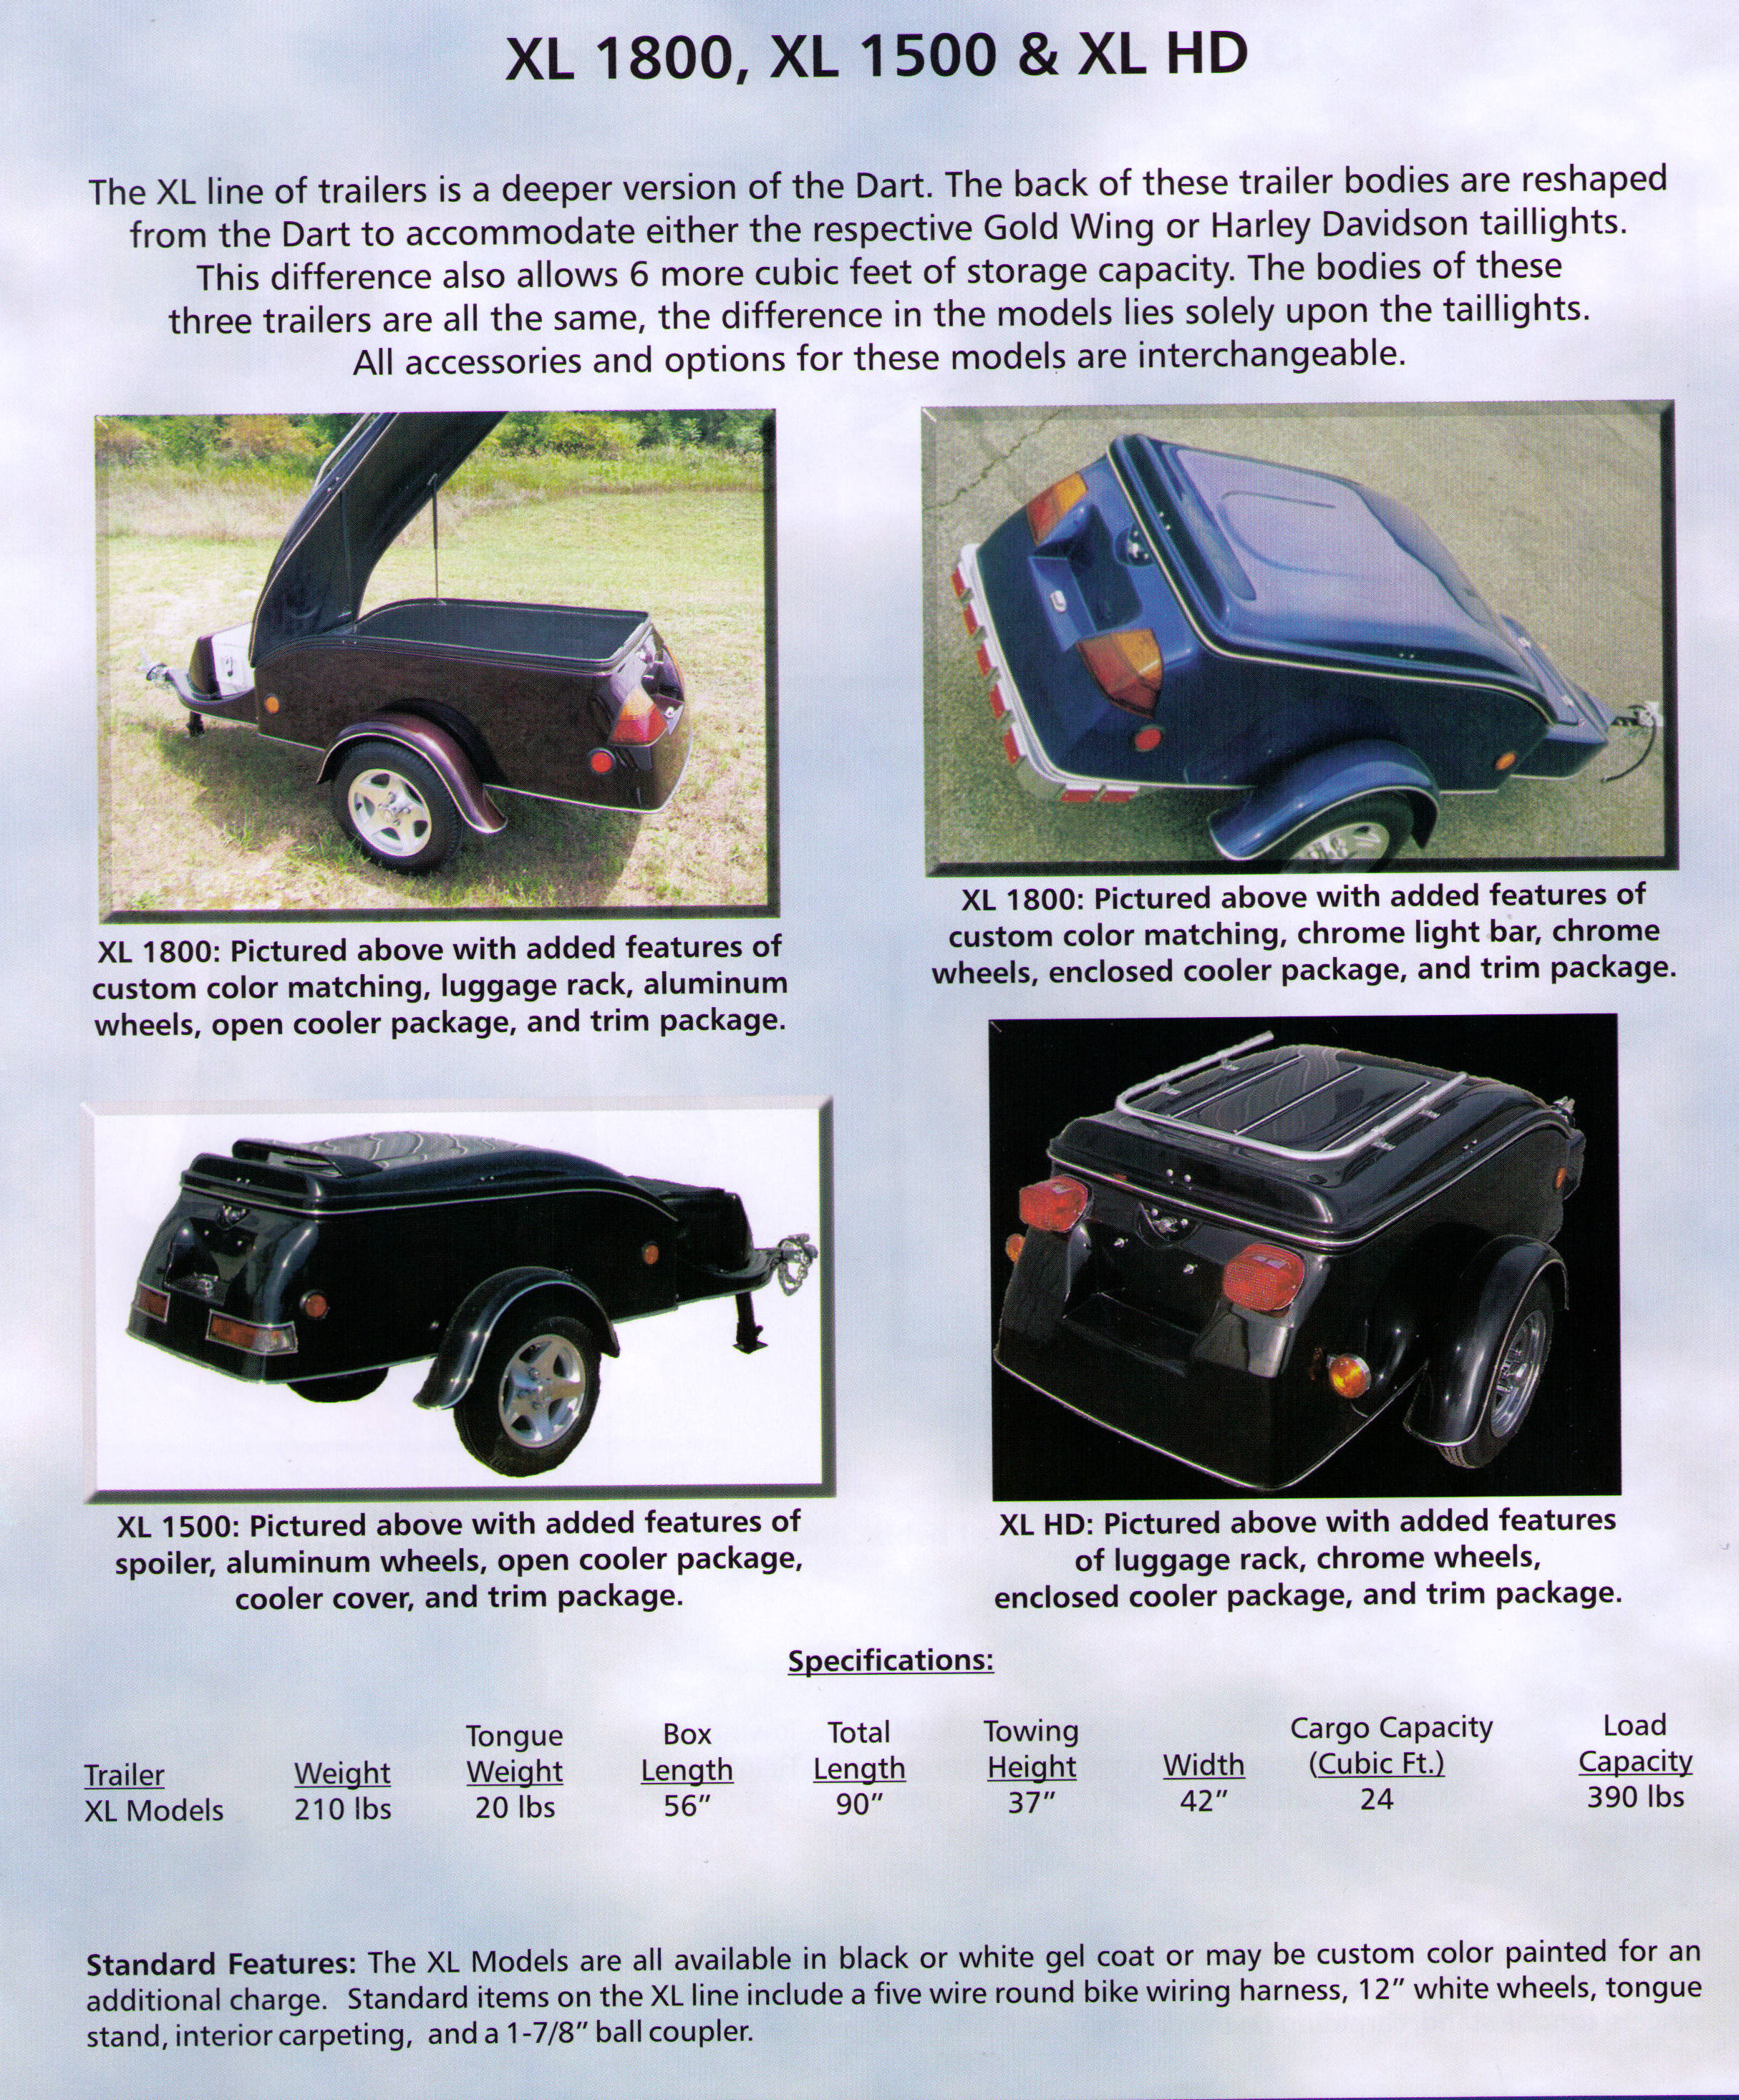 Specifications/Features Models XLHD And XL1800 Motorcycle Towable Cargo Trailers